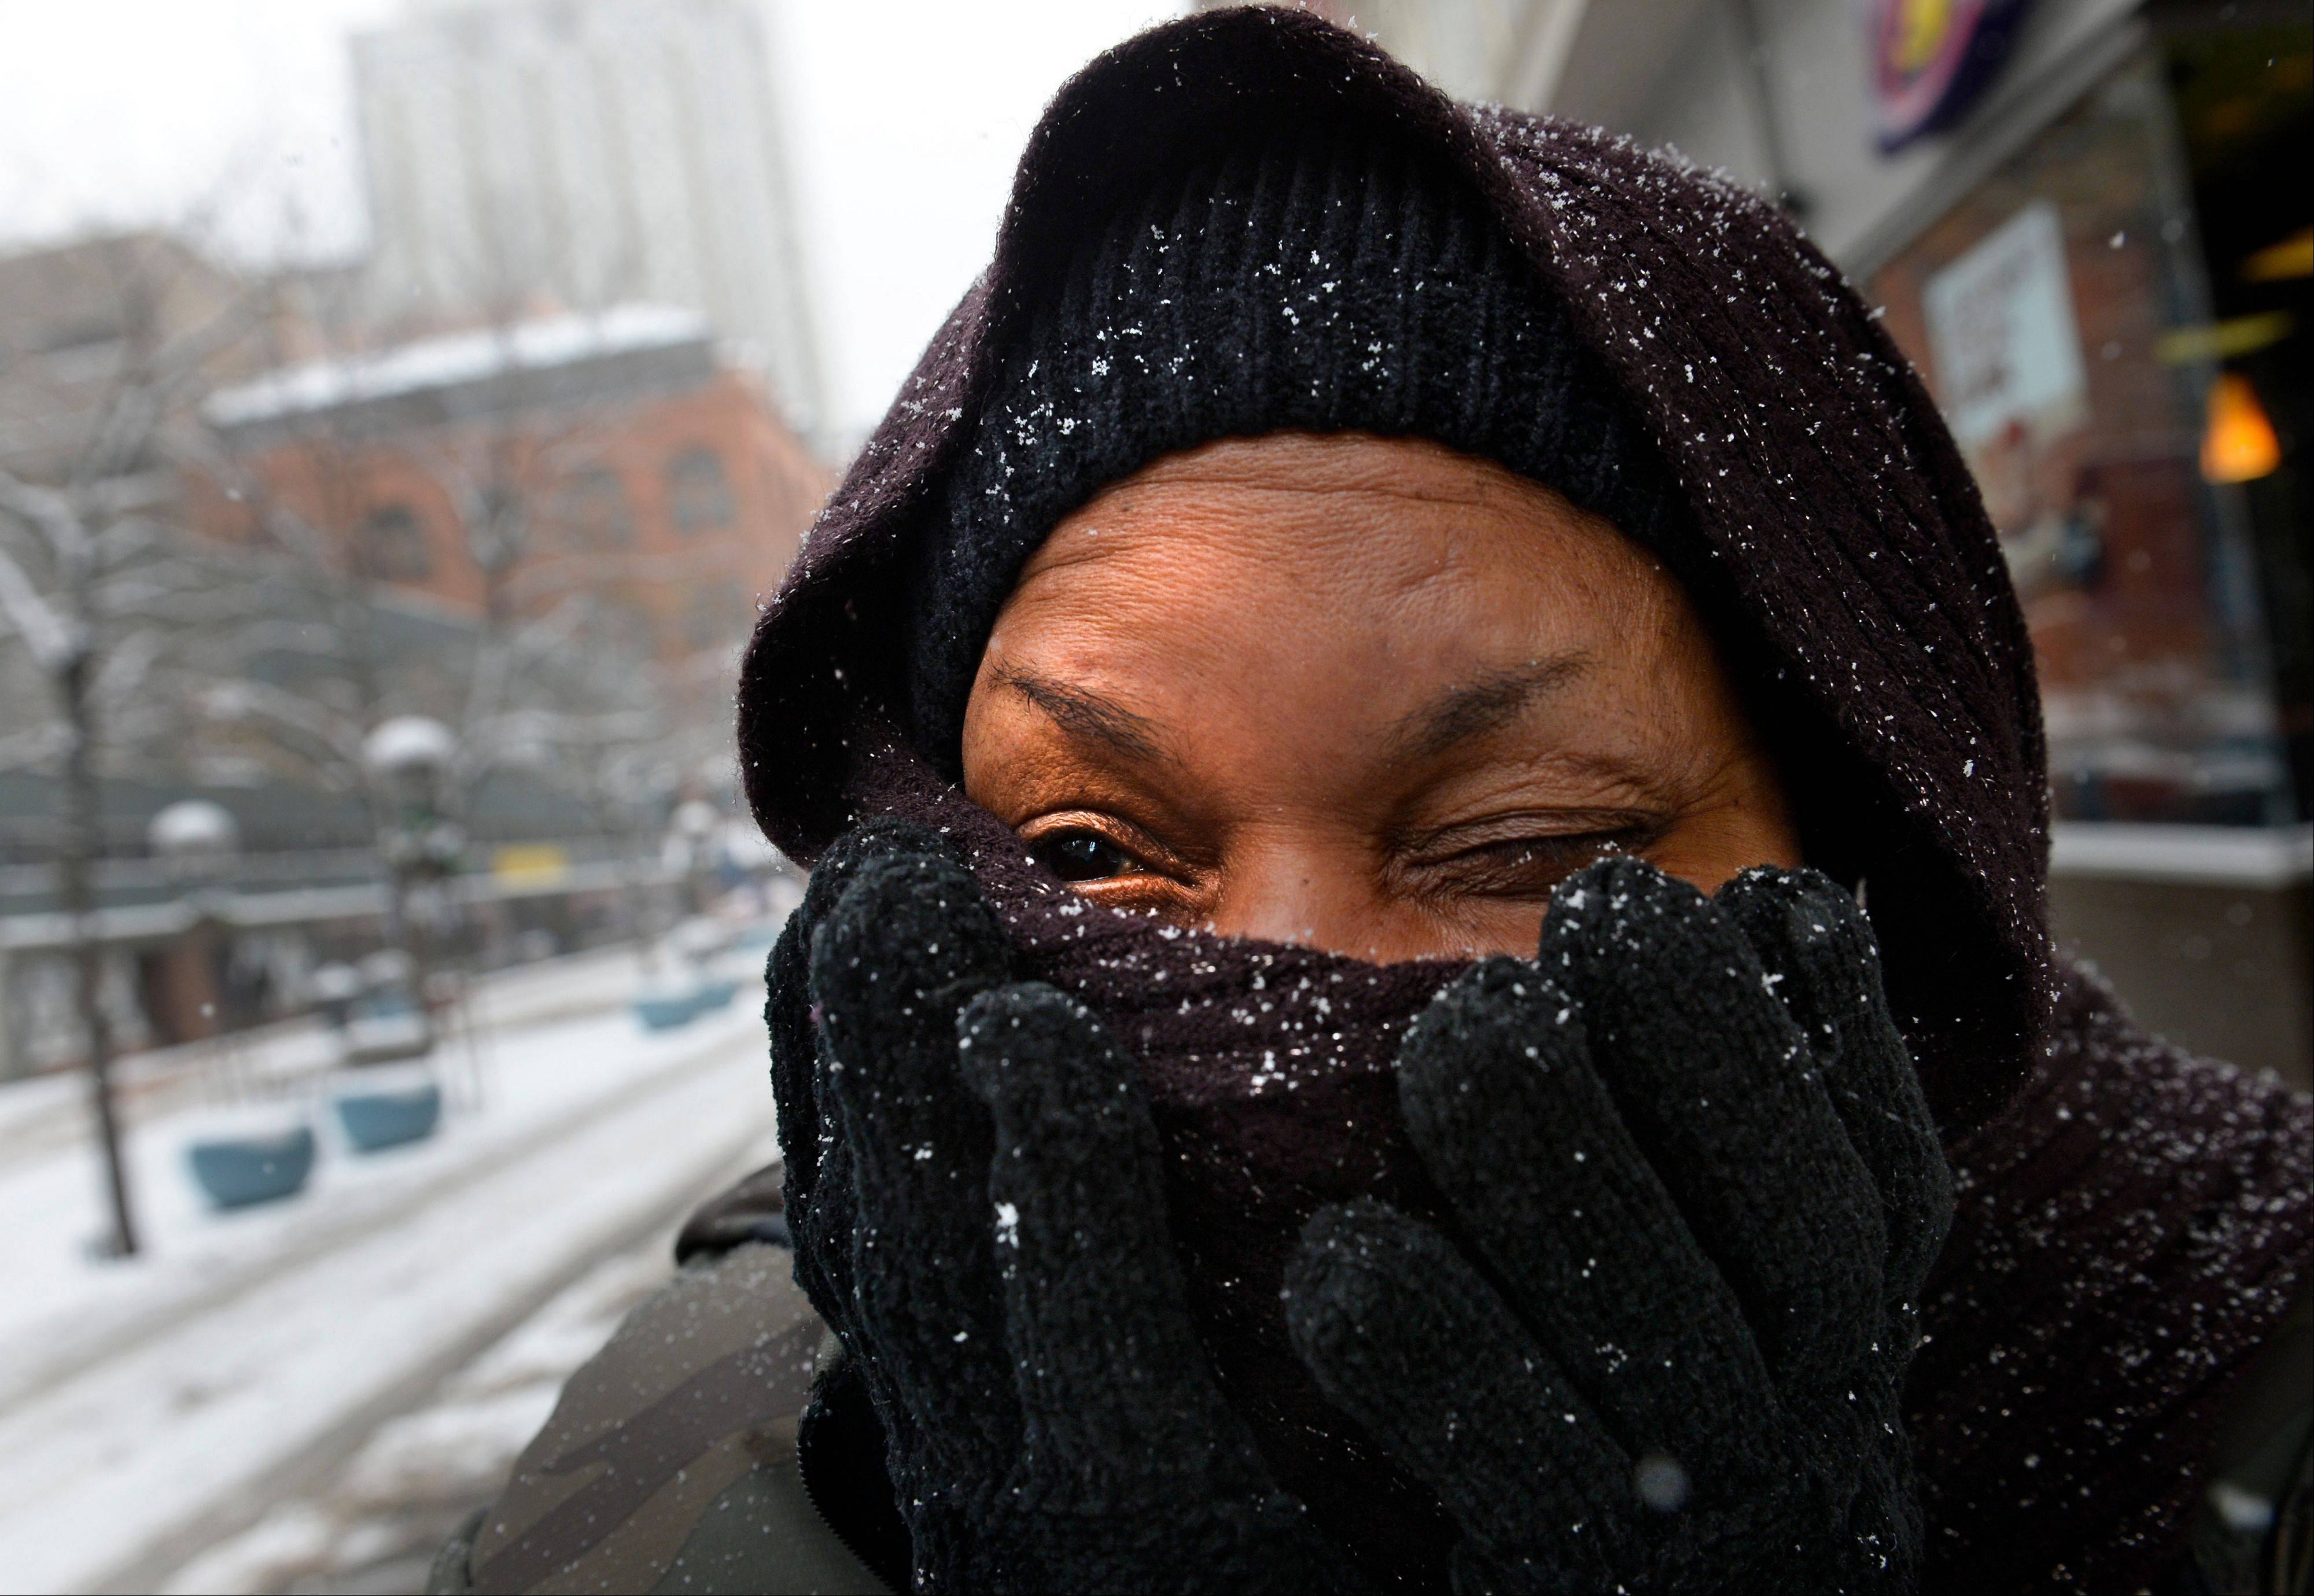 Mary Harts tries to keep warm as she walks in Denver on Tuesday. A wintry storm pushing through the Rockies and Midwest is bringing bitterly cold temperatures and treacherous driving conditions.